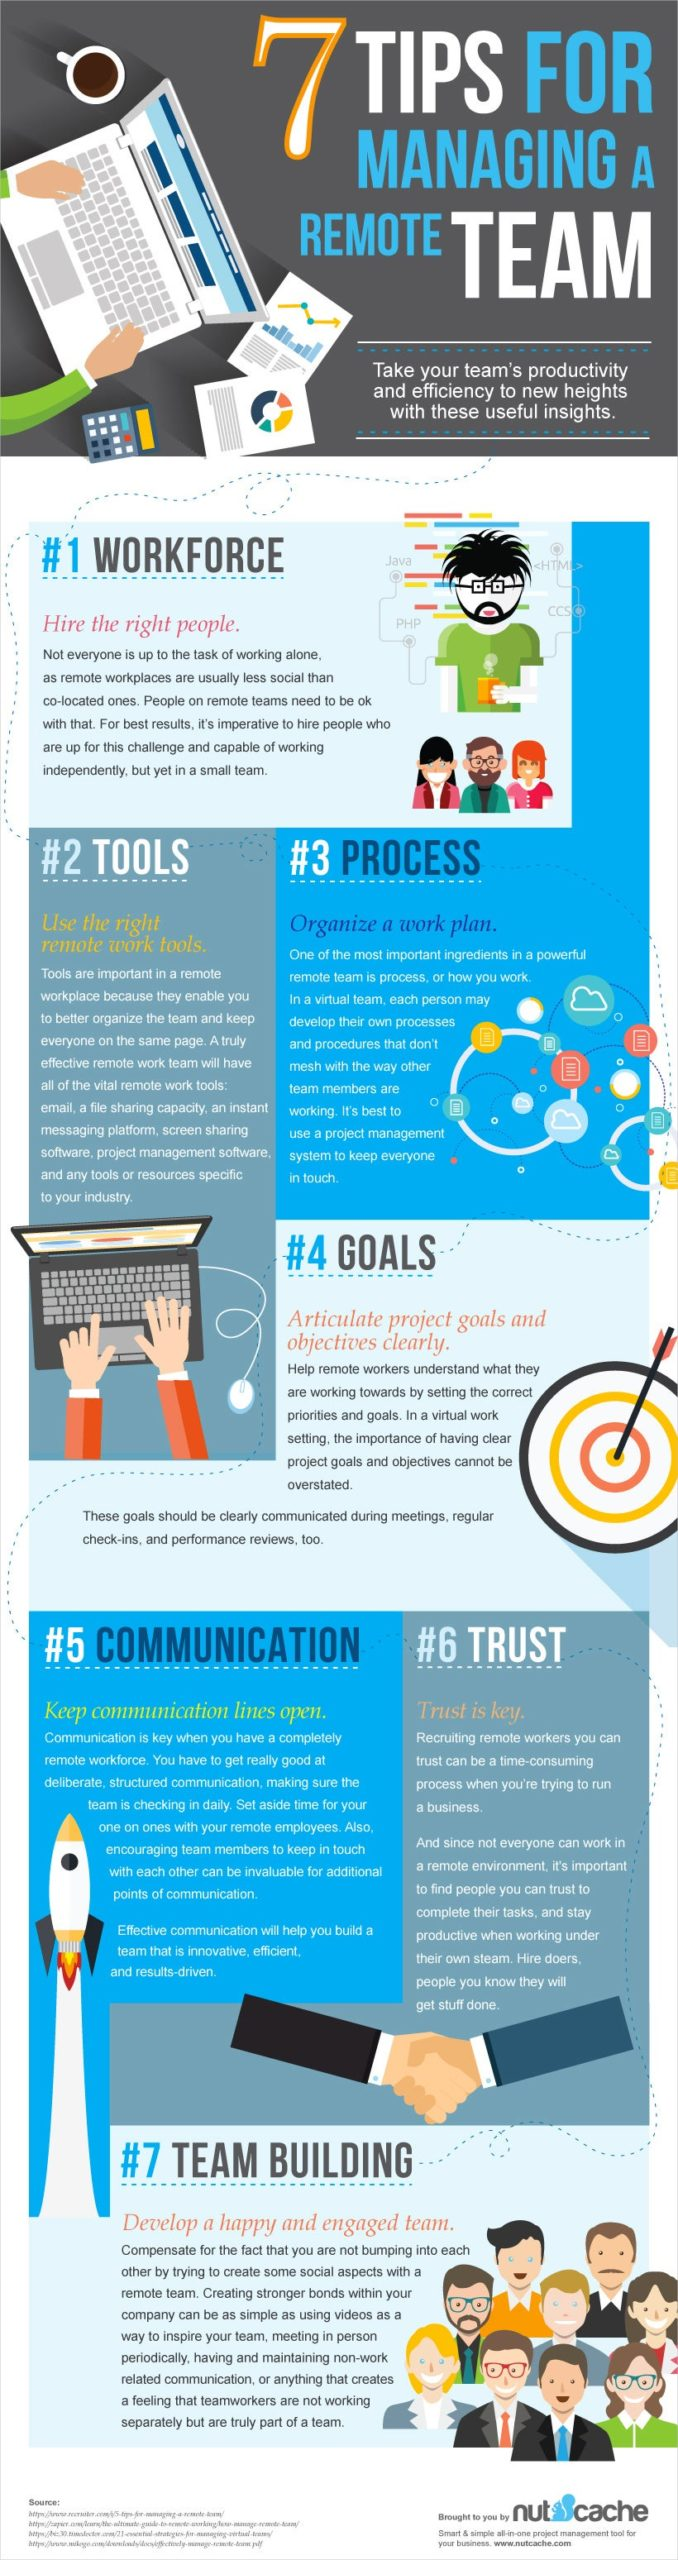 7 Tips for Managing a Remote Team Infographic Image